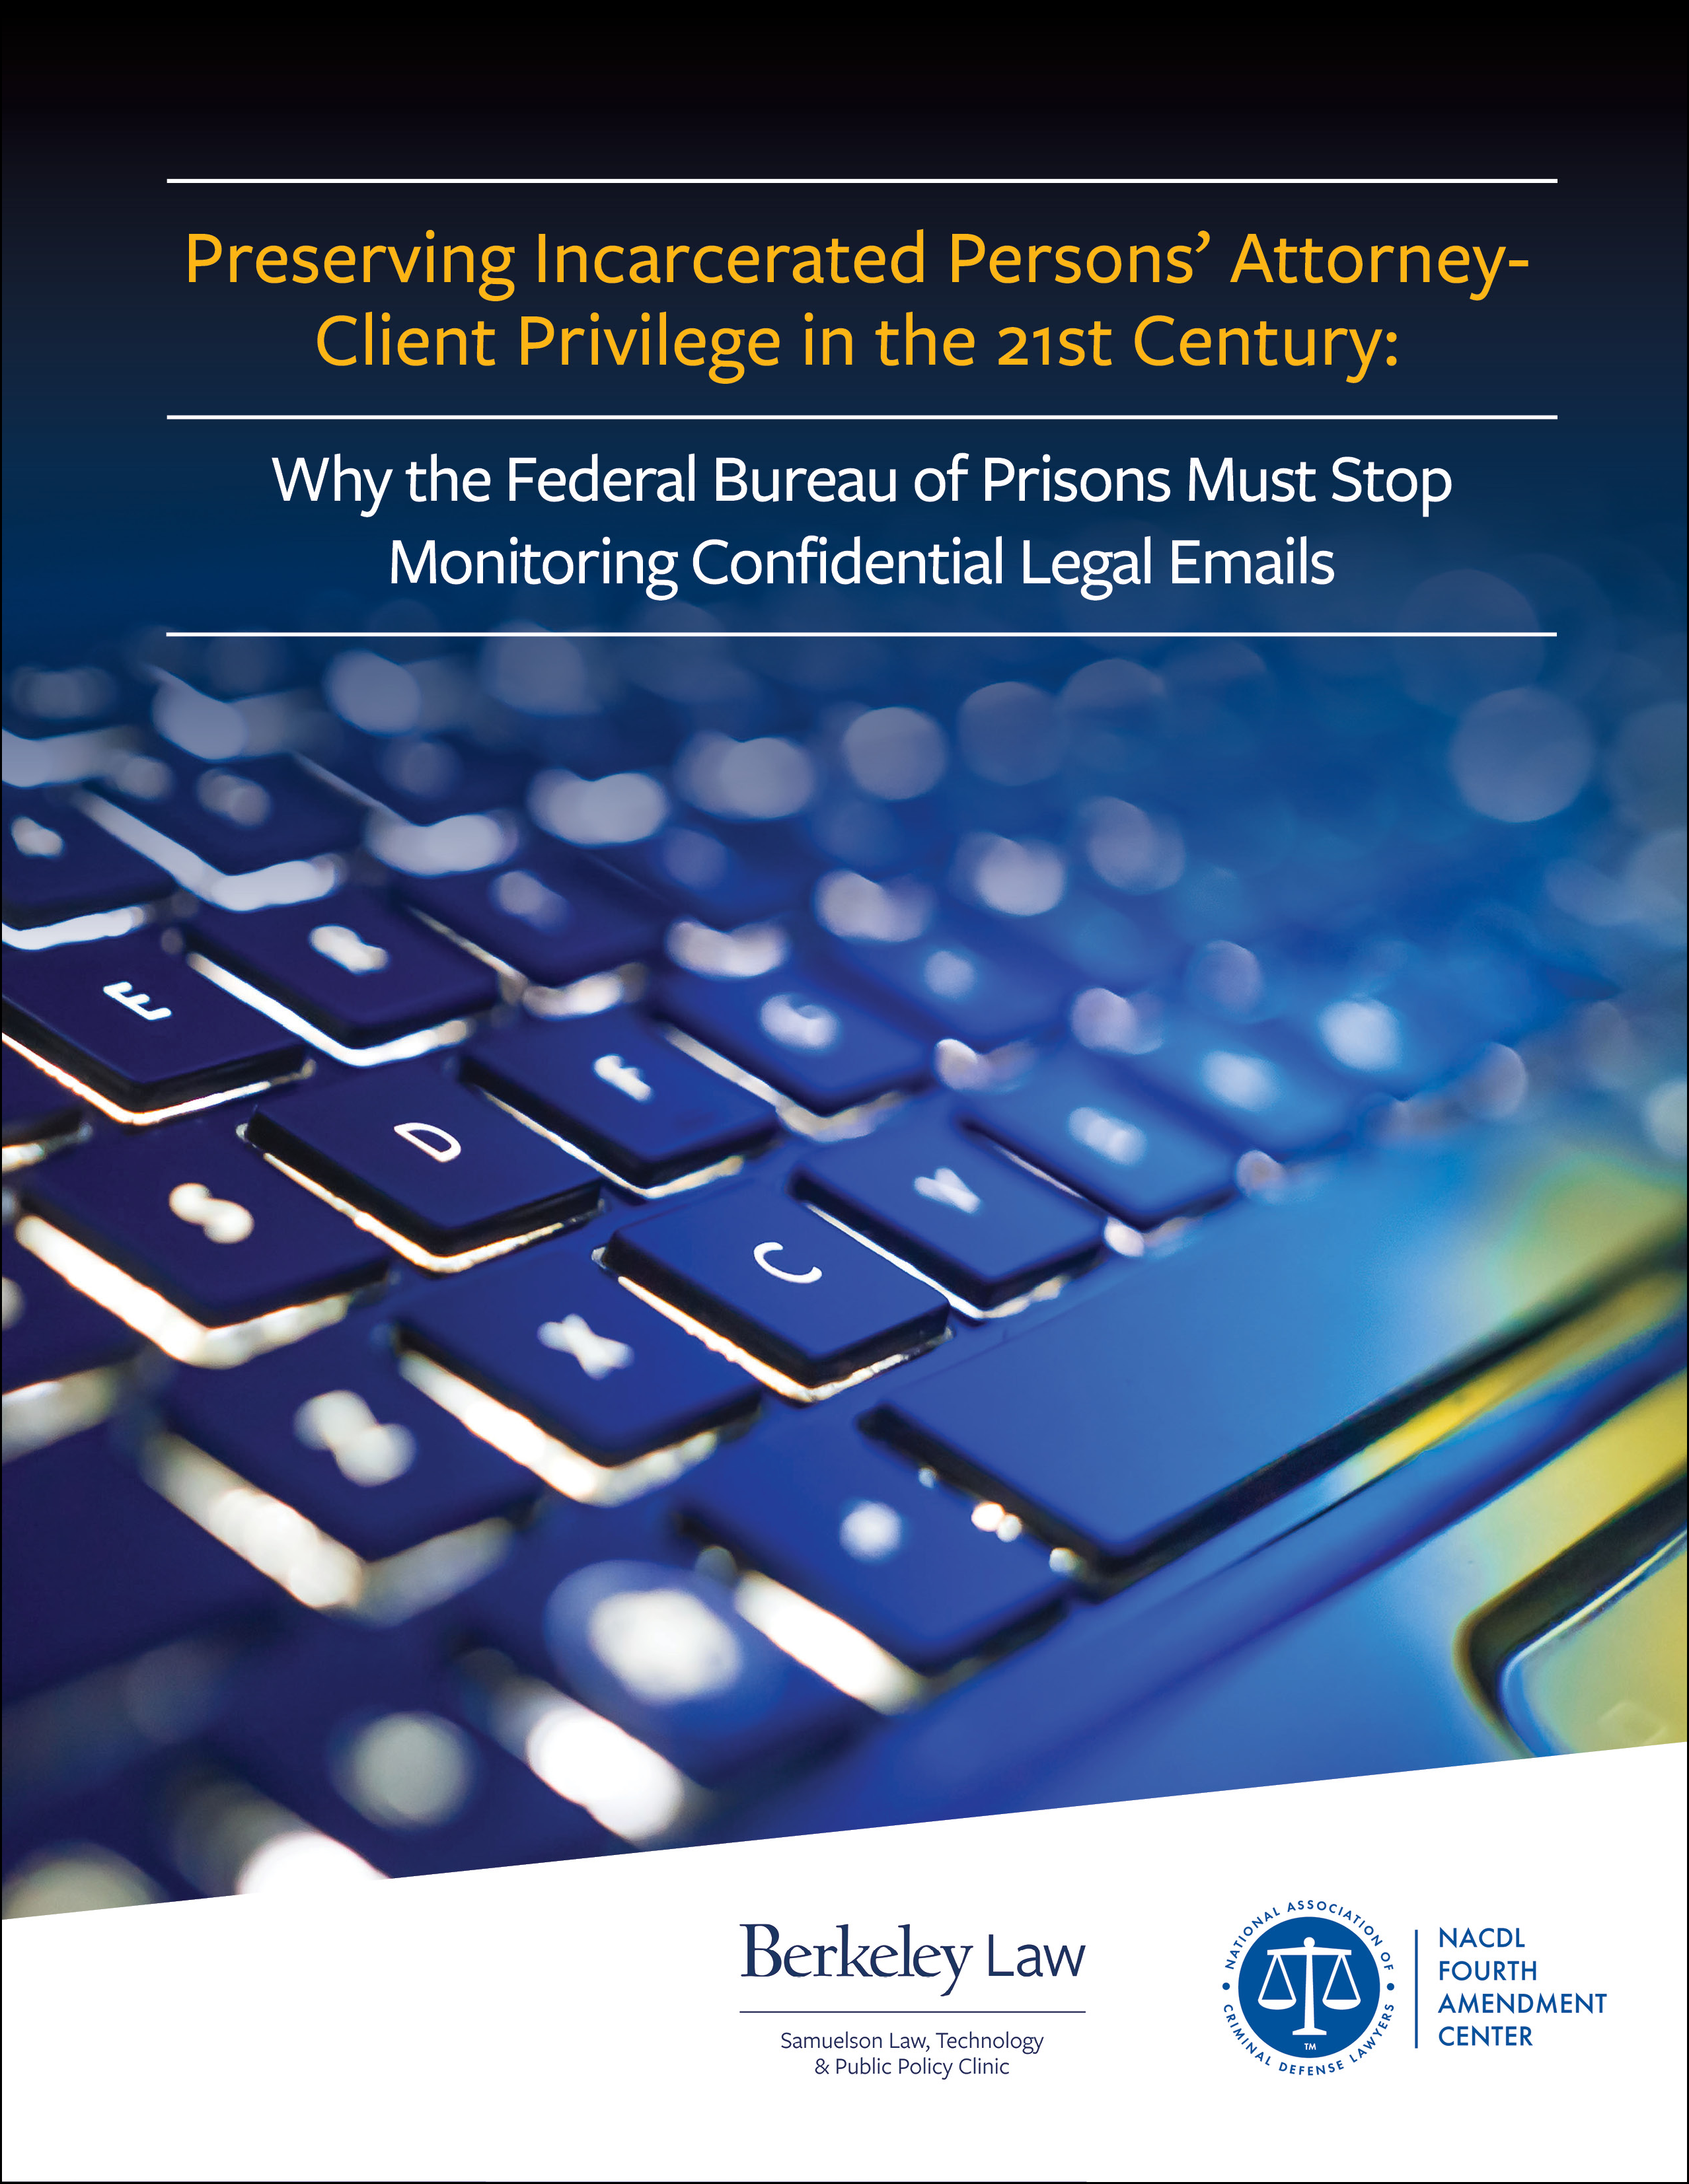 Preserving Incarcerated Persons' Attorney-Client Privilege in the 21st Century Cover